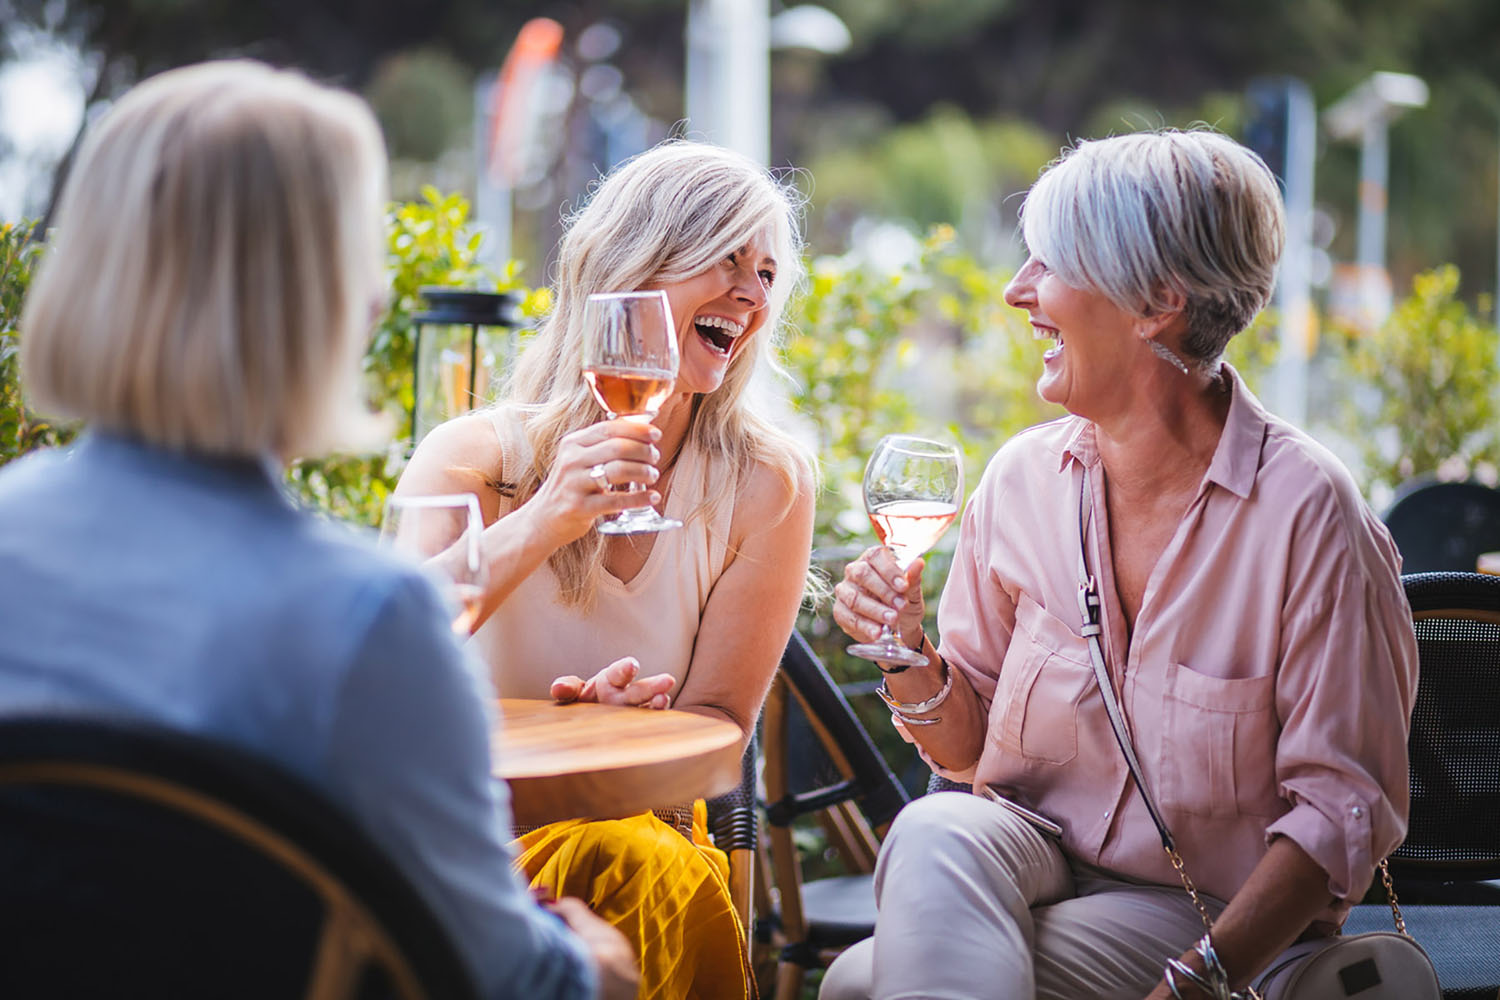 Women drinking wine and laughing at a restaurant